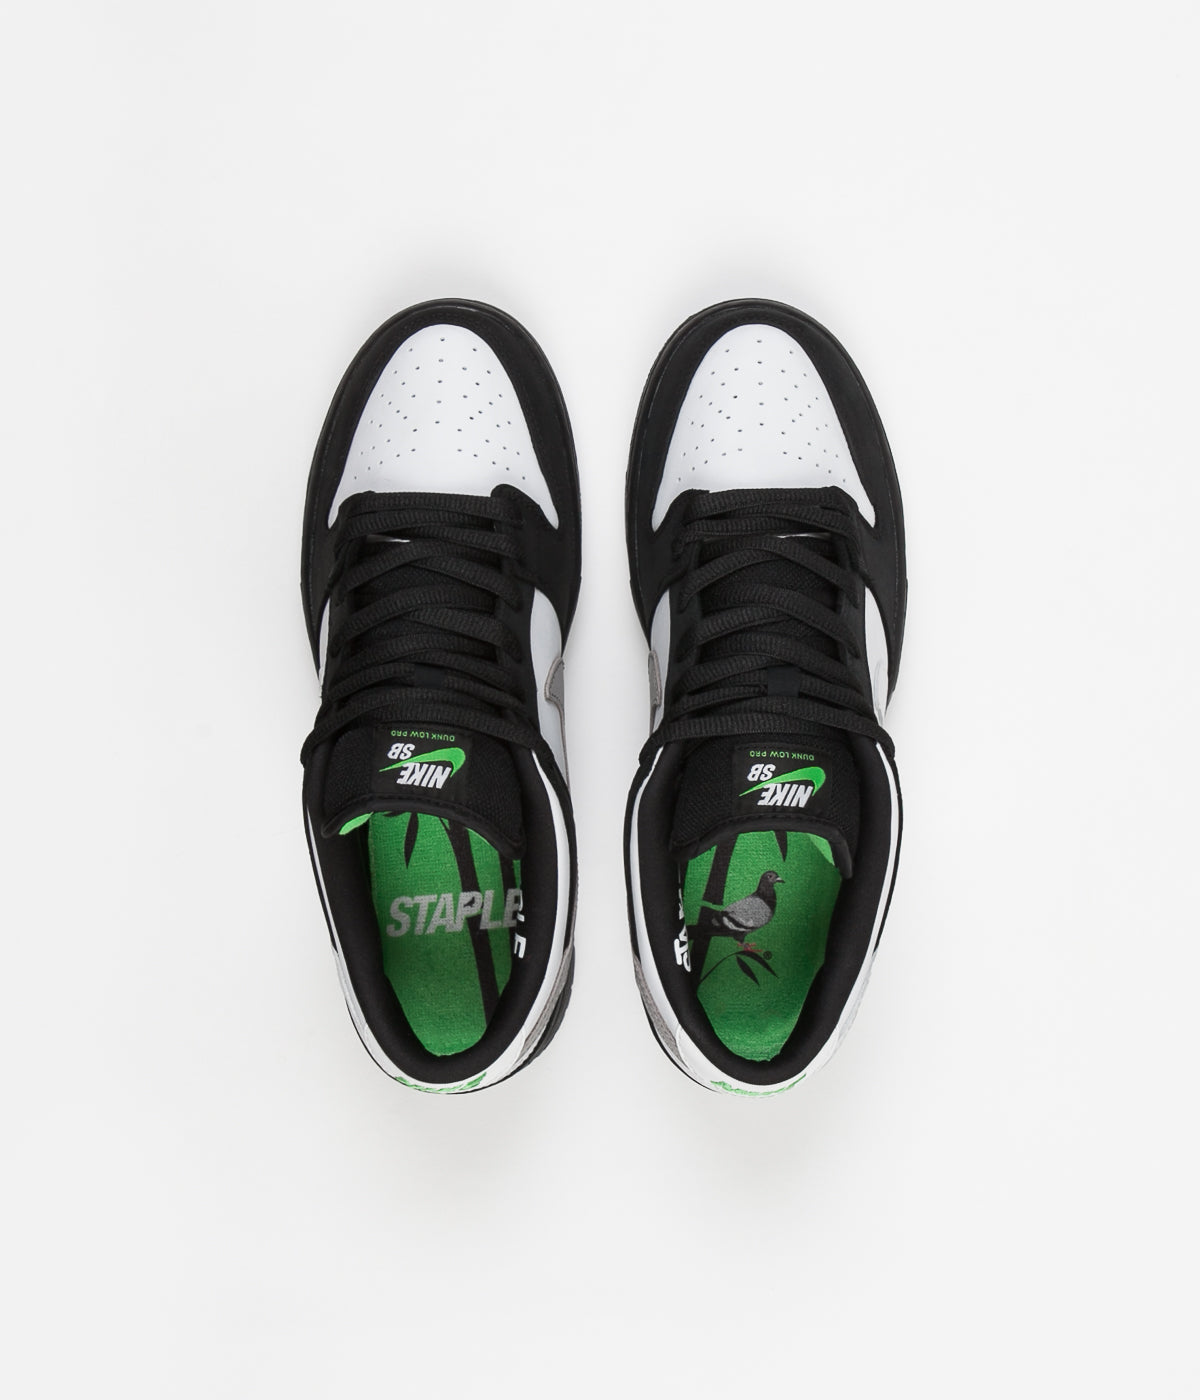 official photos b090e 1a1fb Nike SB Dunk Low Pro OG 'Panda Pigeon' Shoes - Black / White ...